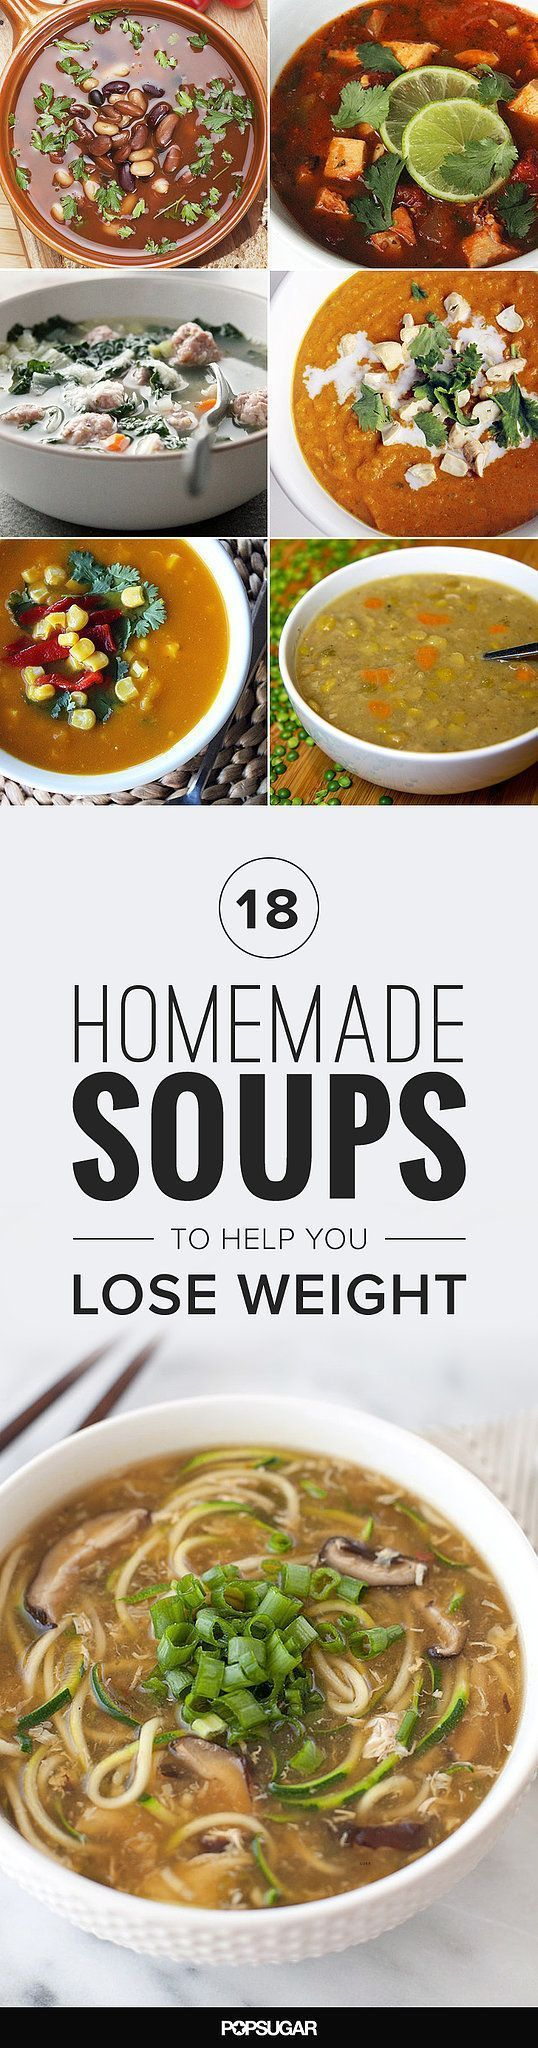 Homemade soups to help you lose weight. Great for healthy eating.